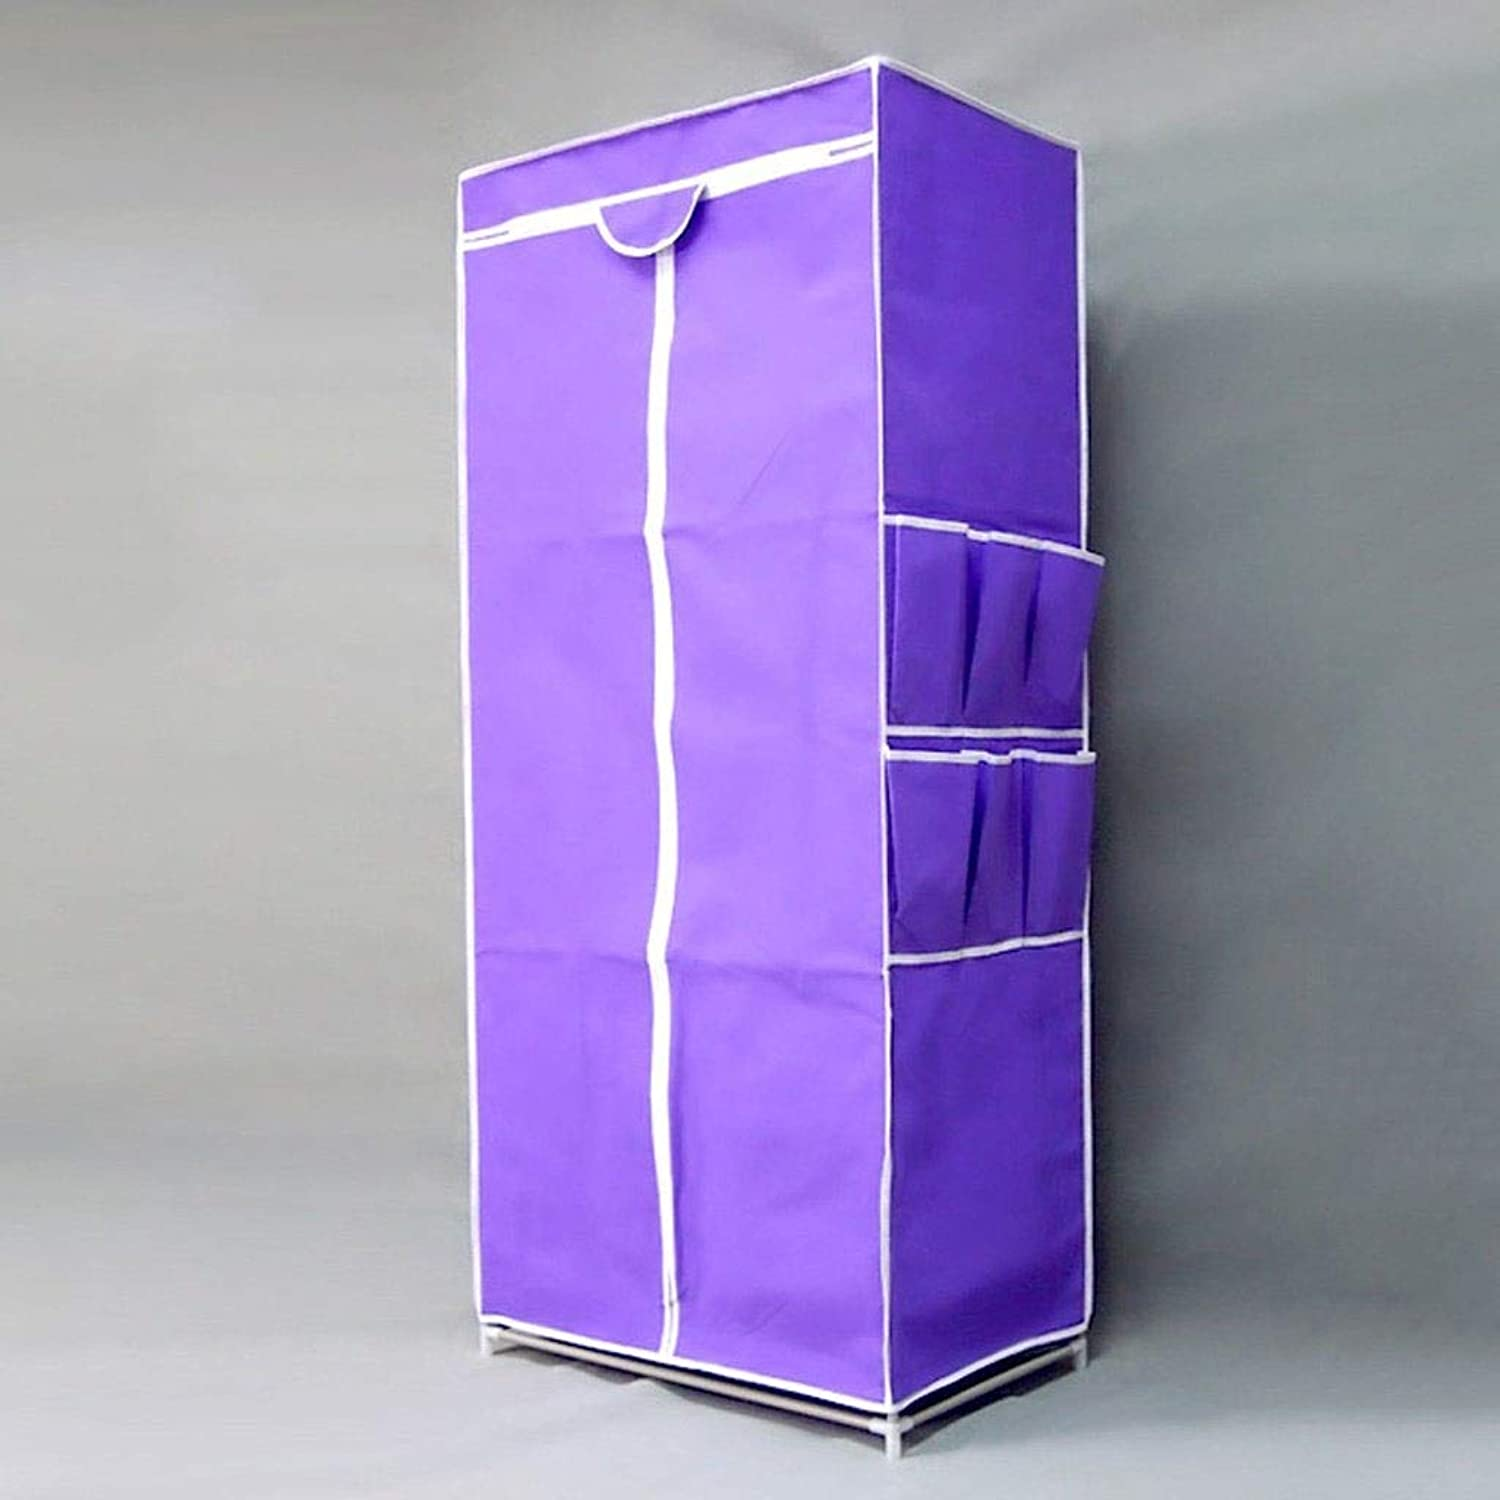 Yalztc-zyq16 Small Cloths Simple Steel Single Wardrobe Dorm Room Reinforcement Thickening Assembly Fold Cloth Wardrobes (color   Purple)